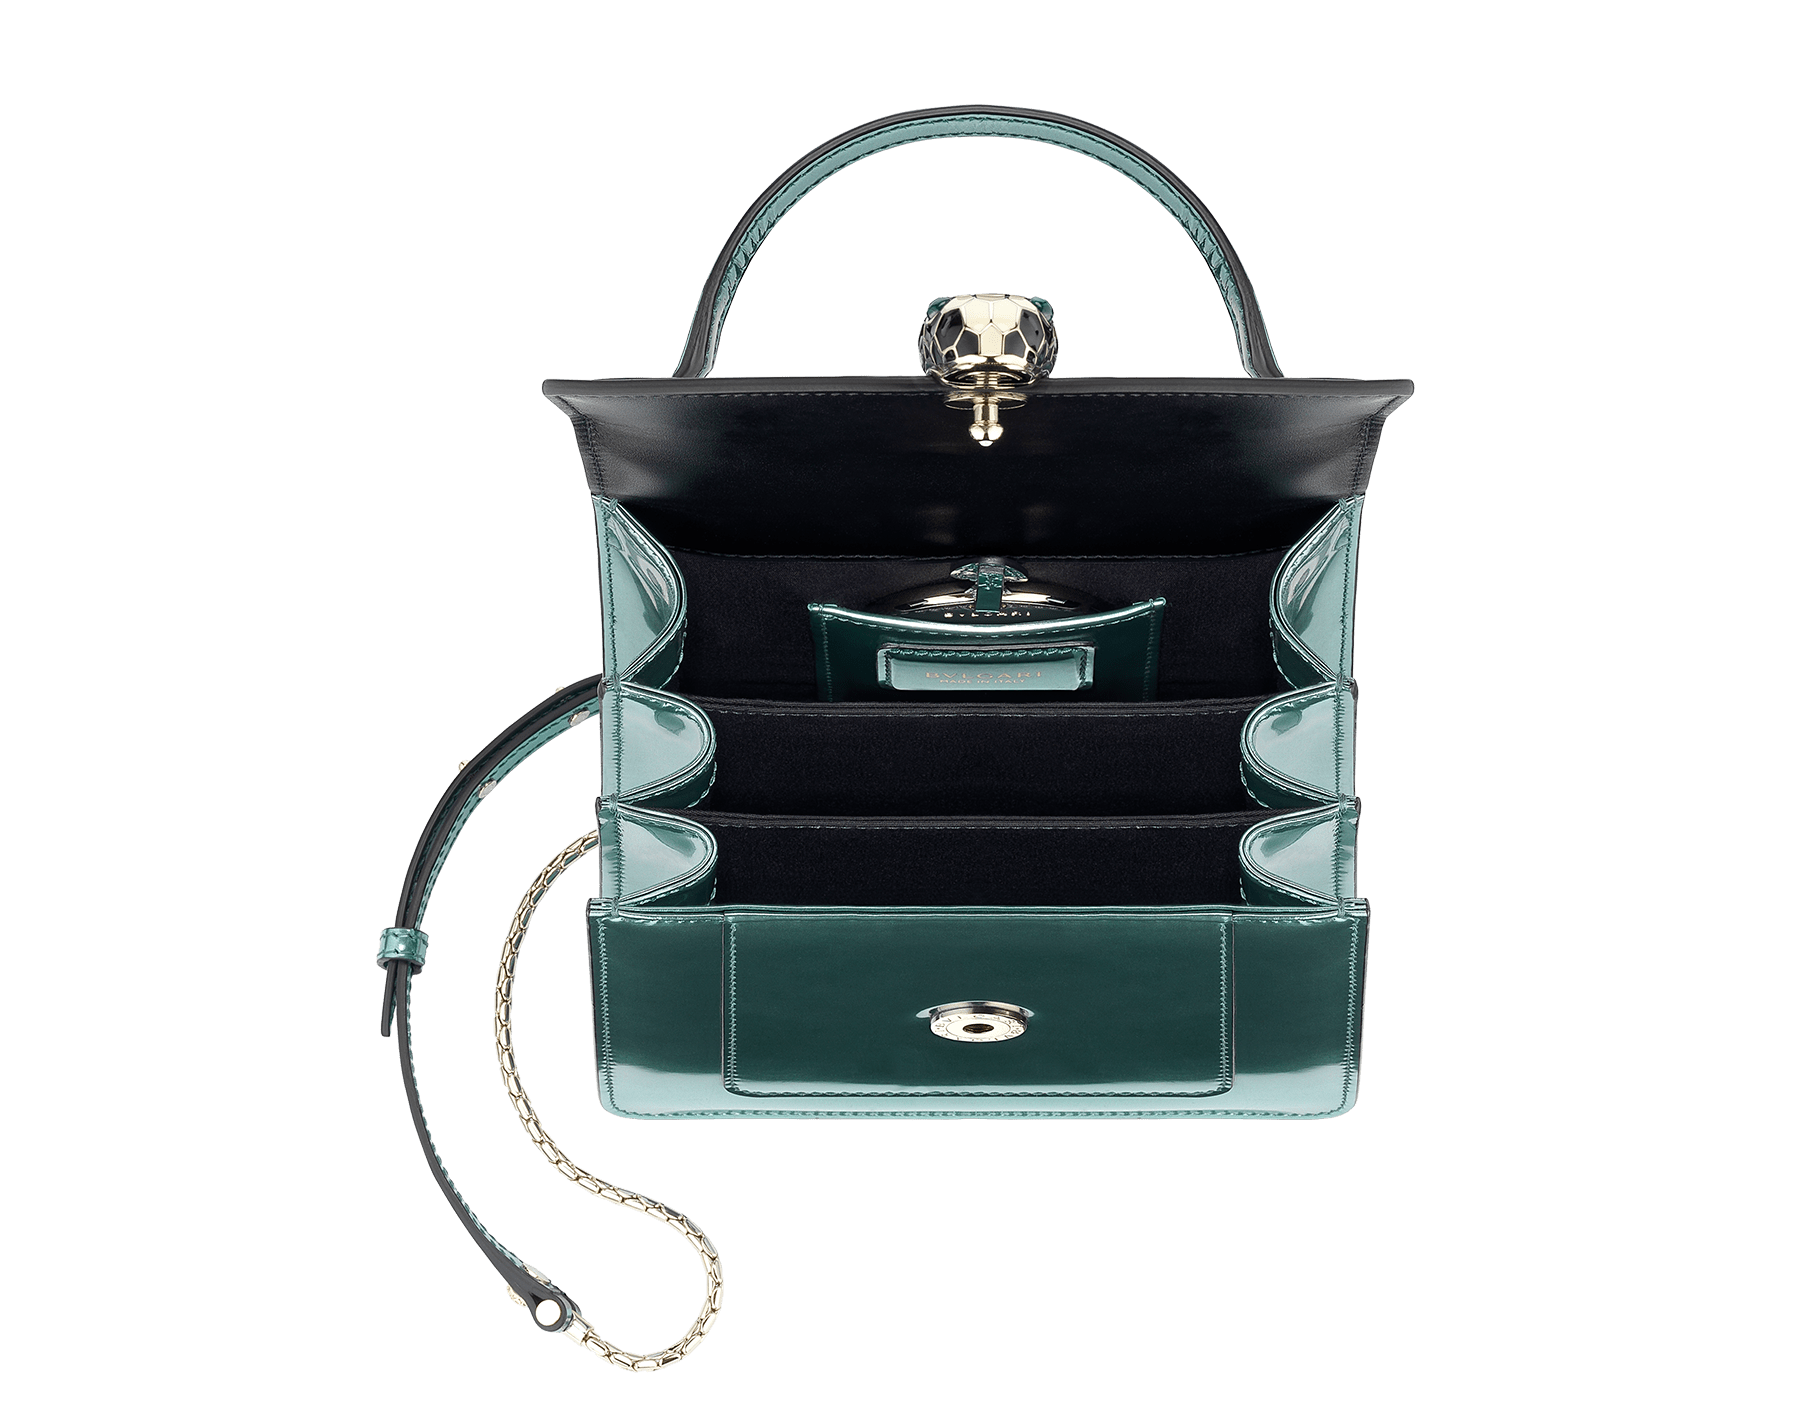 """""""Serpenti Forever """" crossbody bag in glacier turquoise brushed metallic calf leather. Iconic snakehead closure in light gold plated brass enriched with black and white enamel and green malachite eyes. 287045 image 2"""